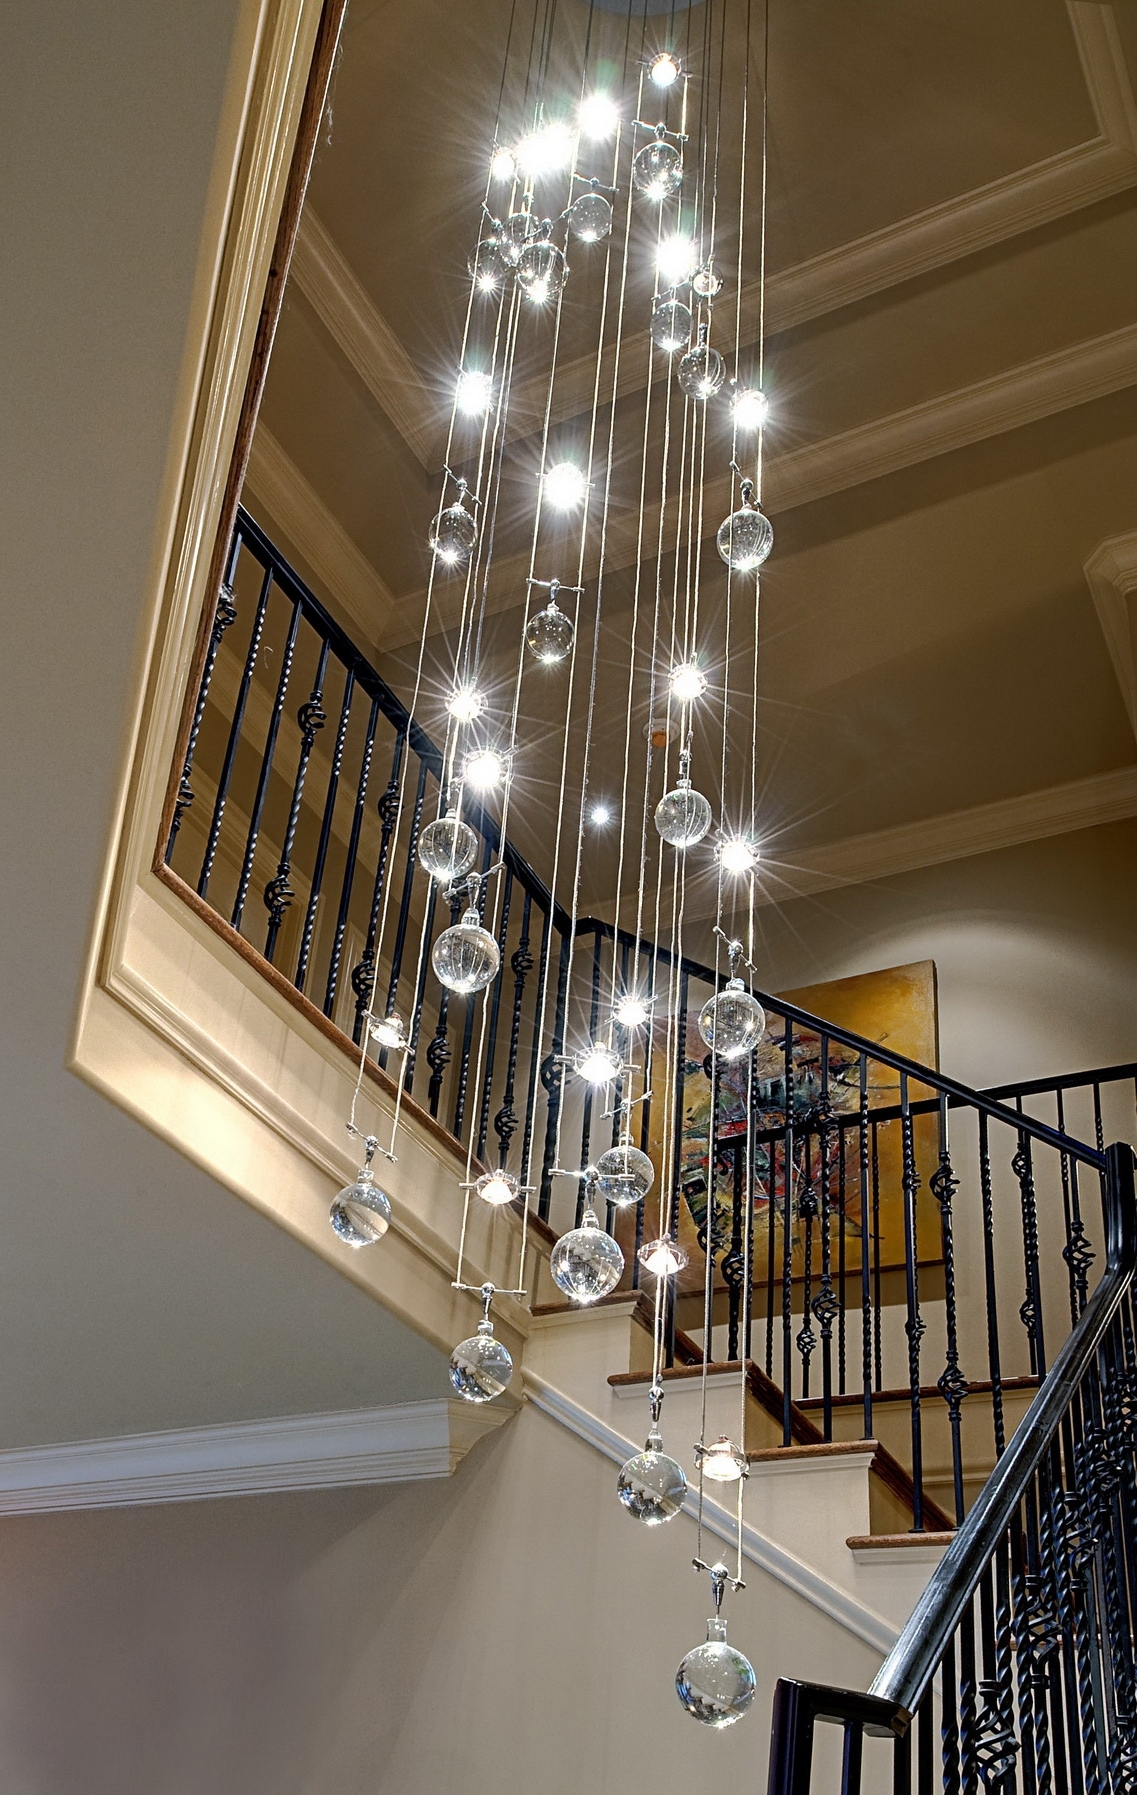 Well Liked Interior: Modern Chandeliers For High Ceiling With Sparkly Crystals Pertaining To Sparkly Chandeliers (View 11 of 15)